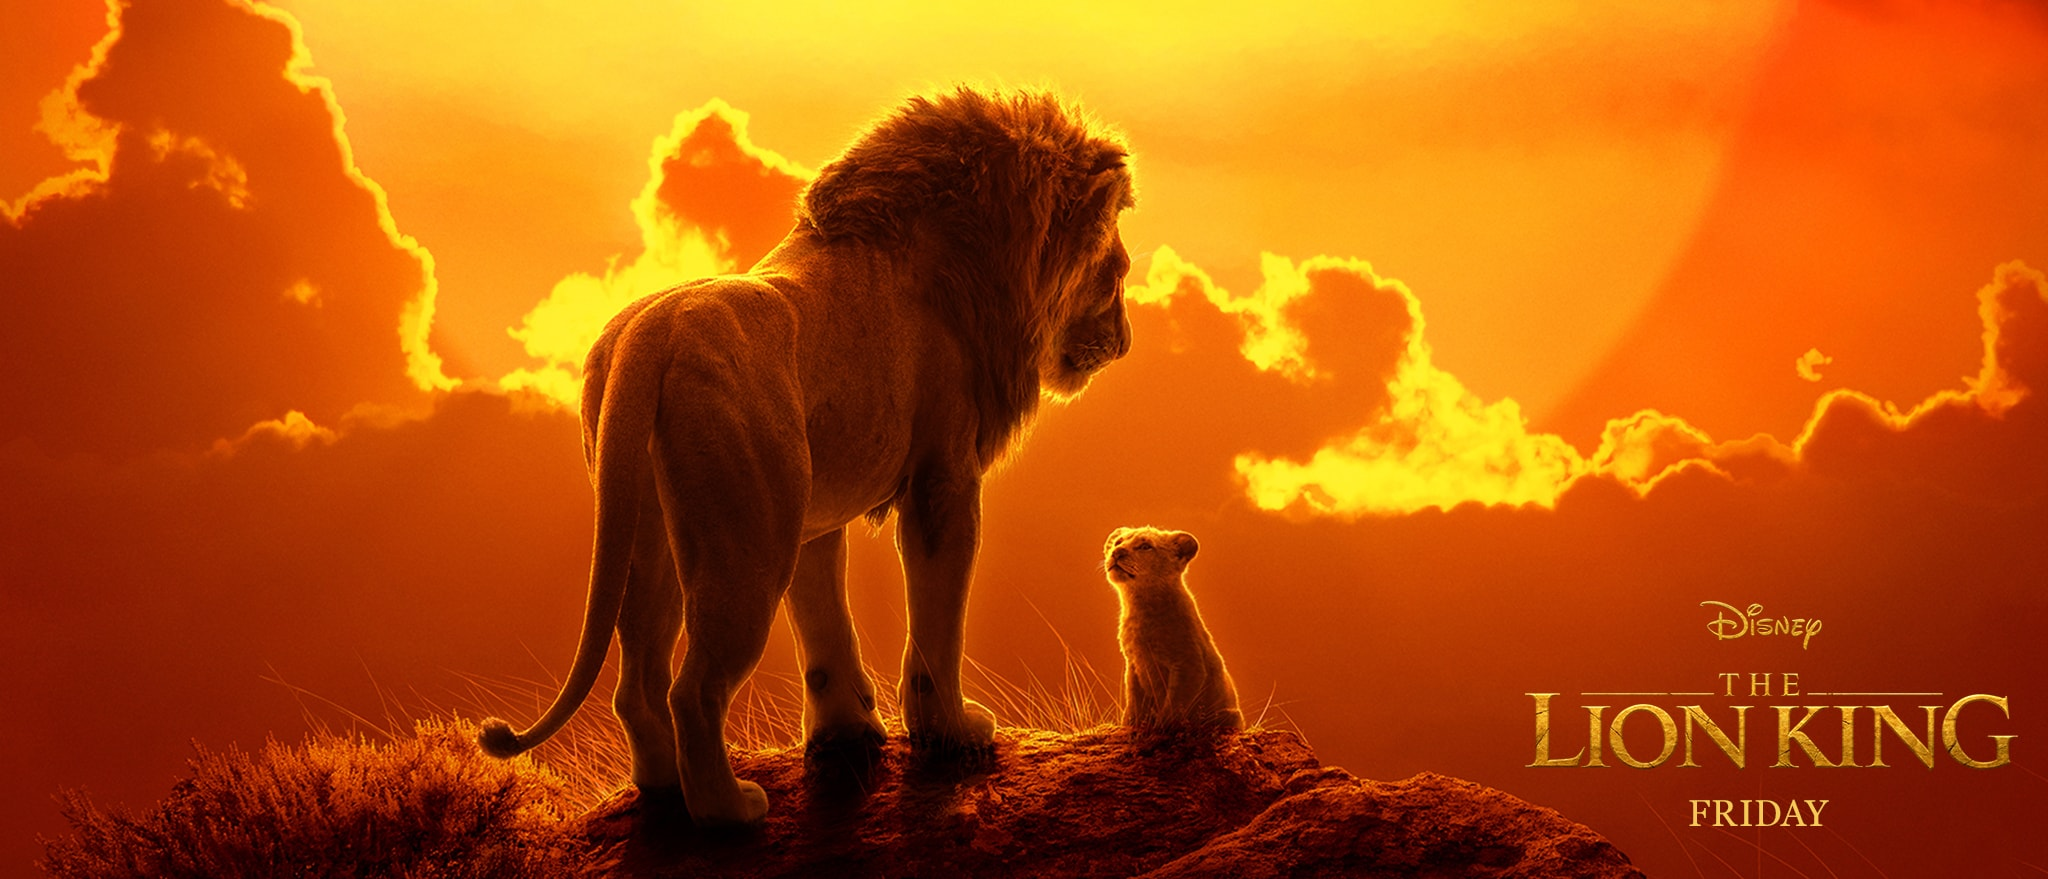 Lion king 2 full movie in hindi on youtube